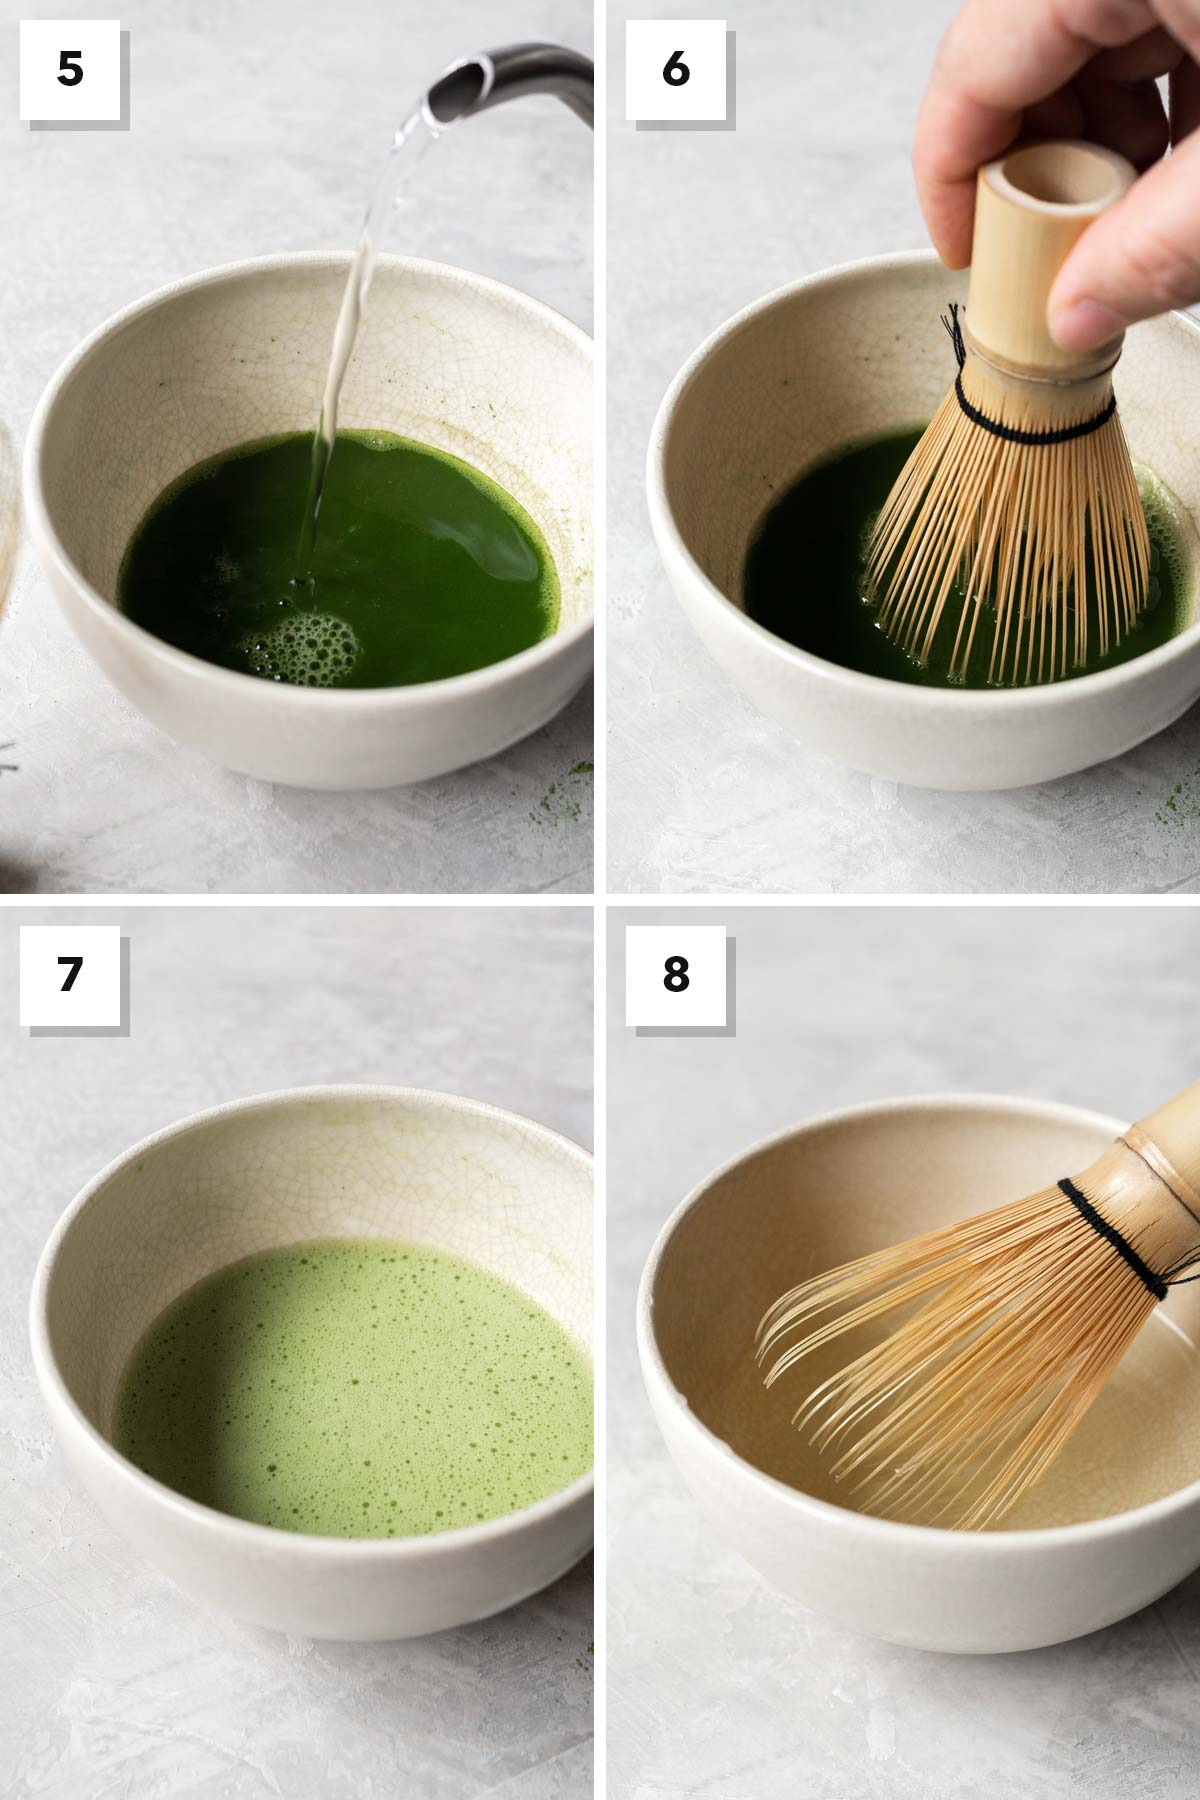 Four image collage showing steps 5-8 of making matcha.